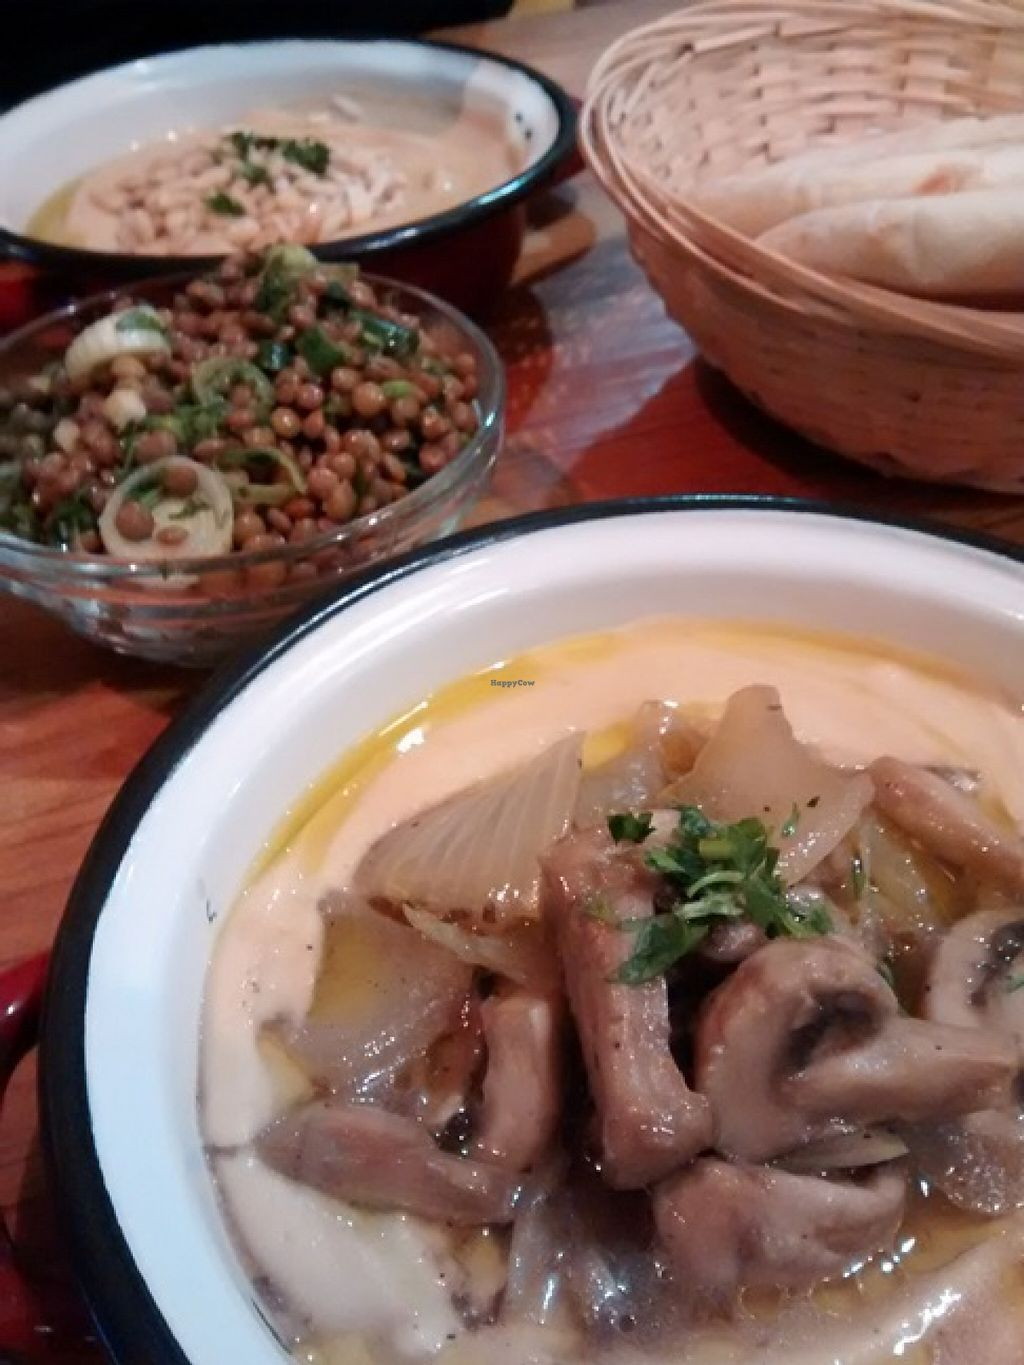 """Photo of La Hummuseria  by <a href=""""/members/profile/LeFunks"""">LeFunks</a> <br/>Hummus + lentil salad tapa <br/> December 24, 2015  - <a href='/contact/abuse/image/65872/129659'>Report</a>"""